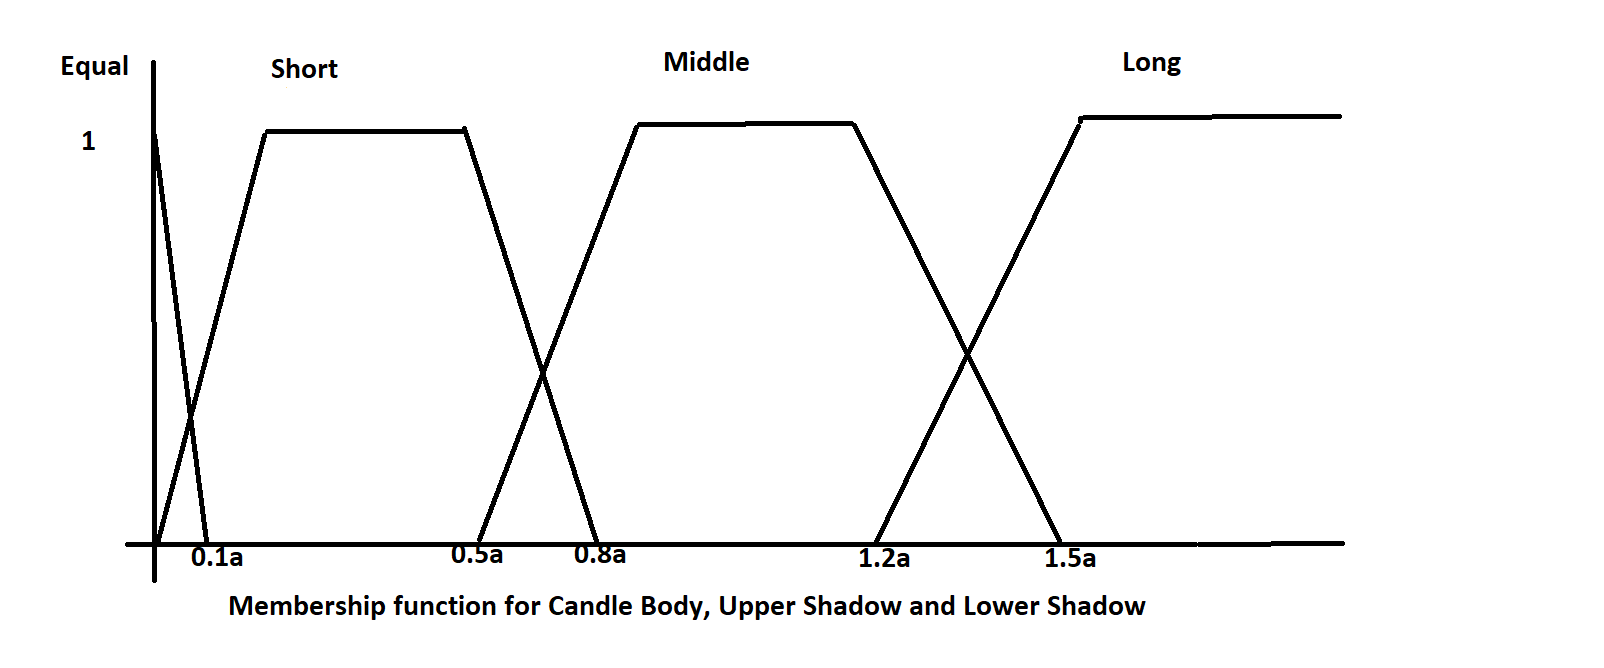 Fuzzy Membership for Candle body, Upper and Lower Shadow